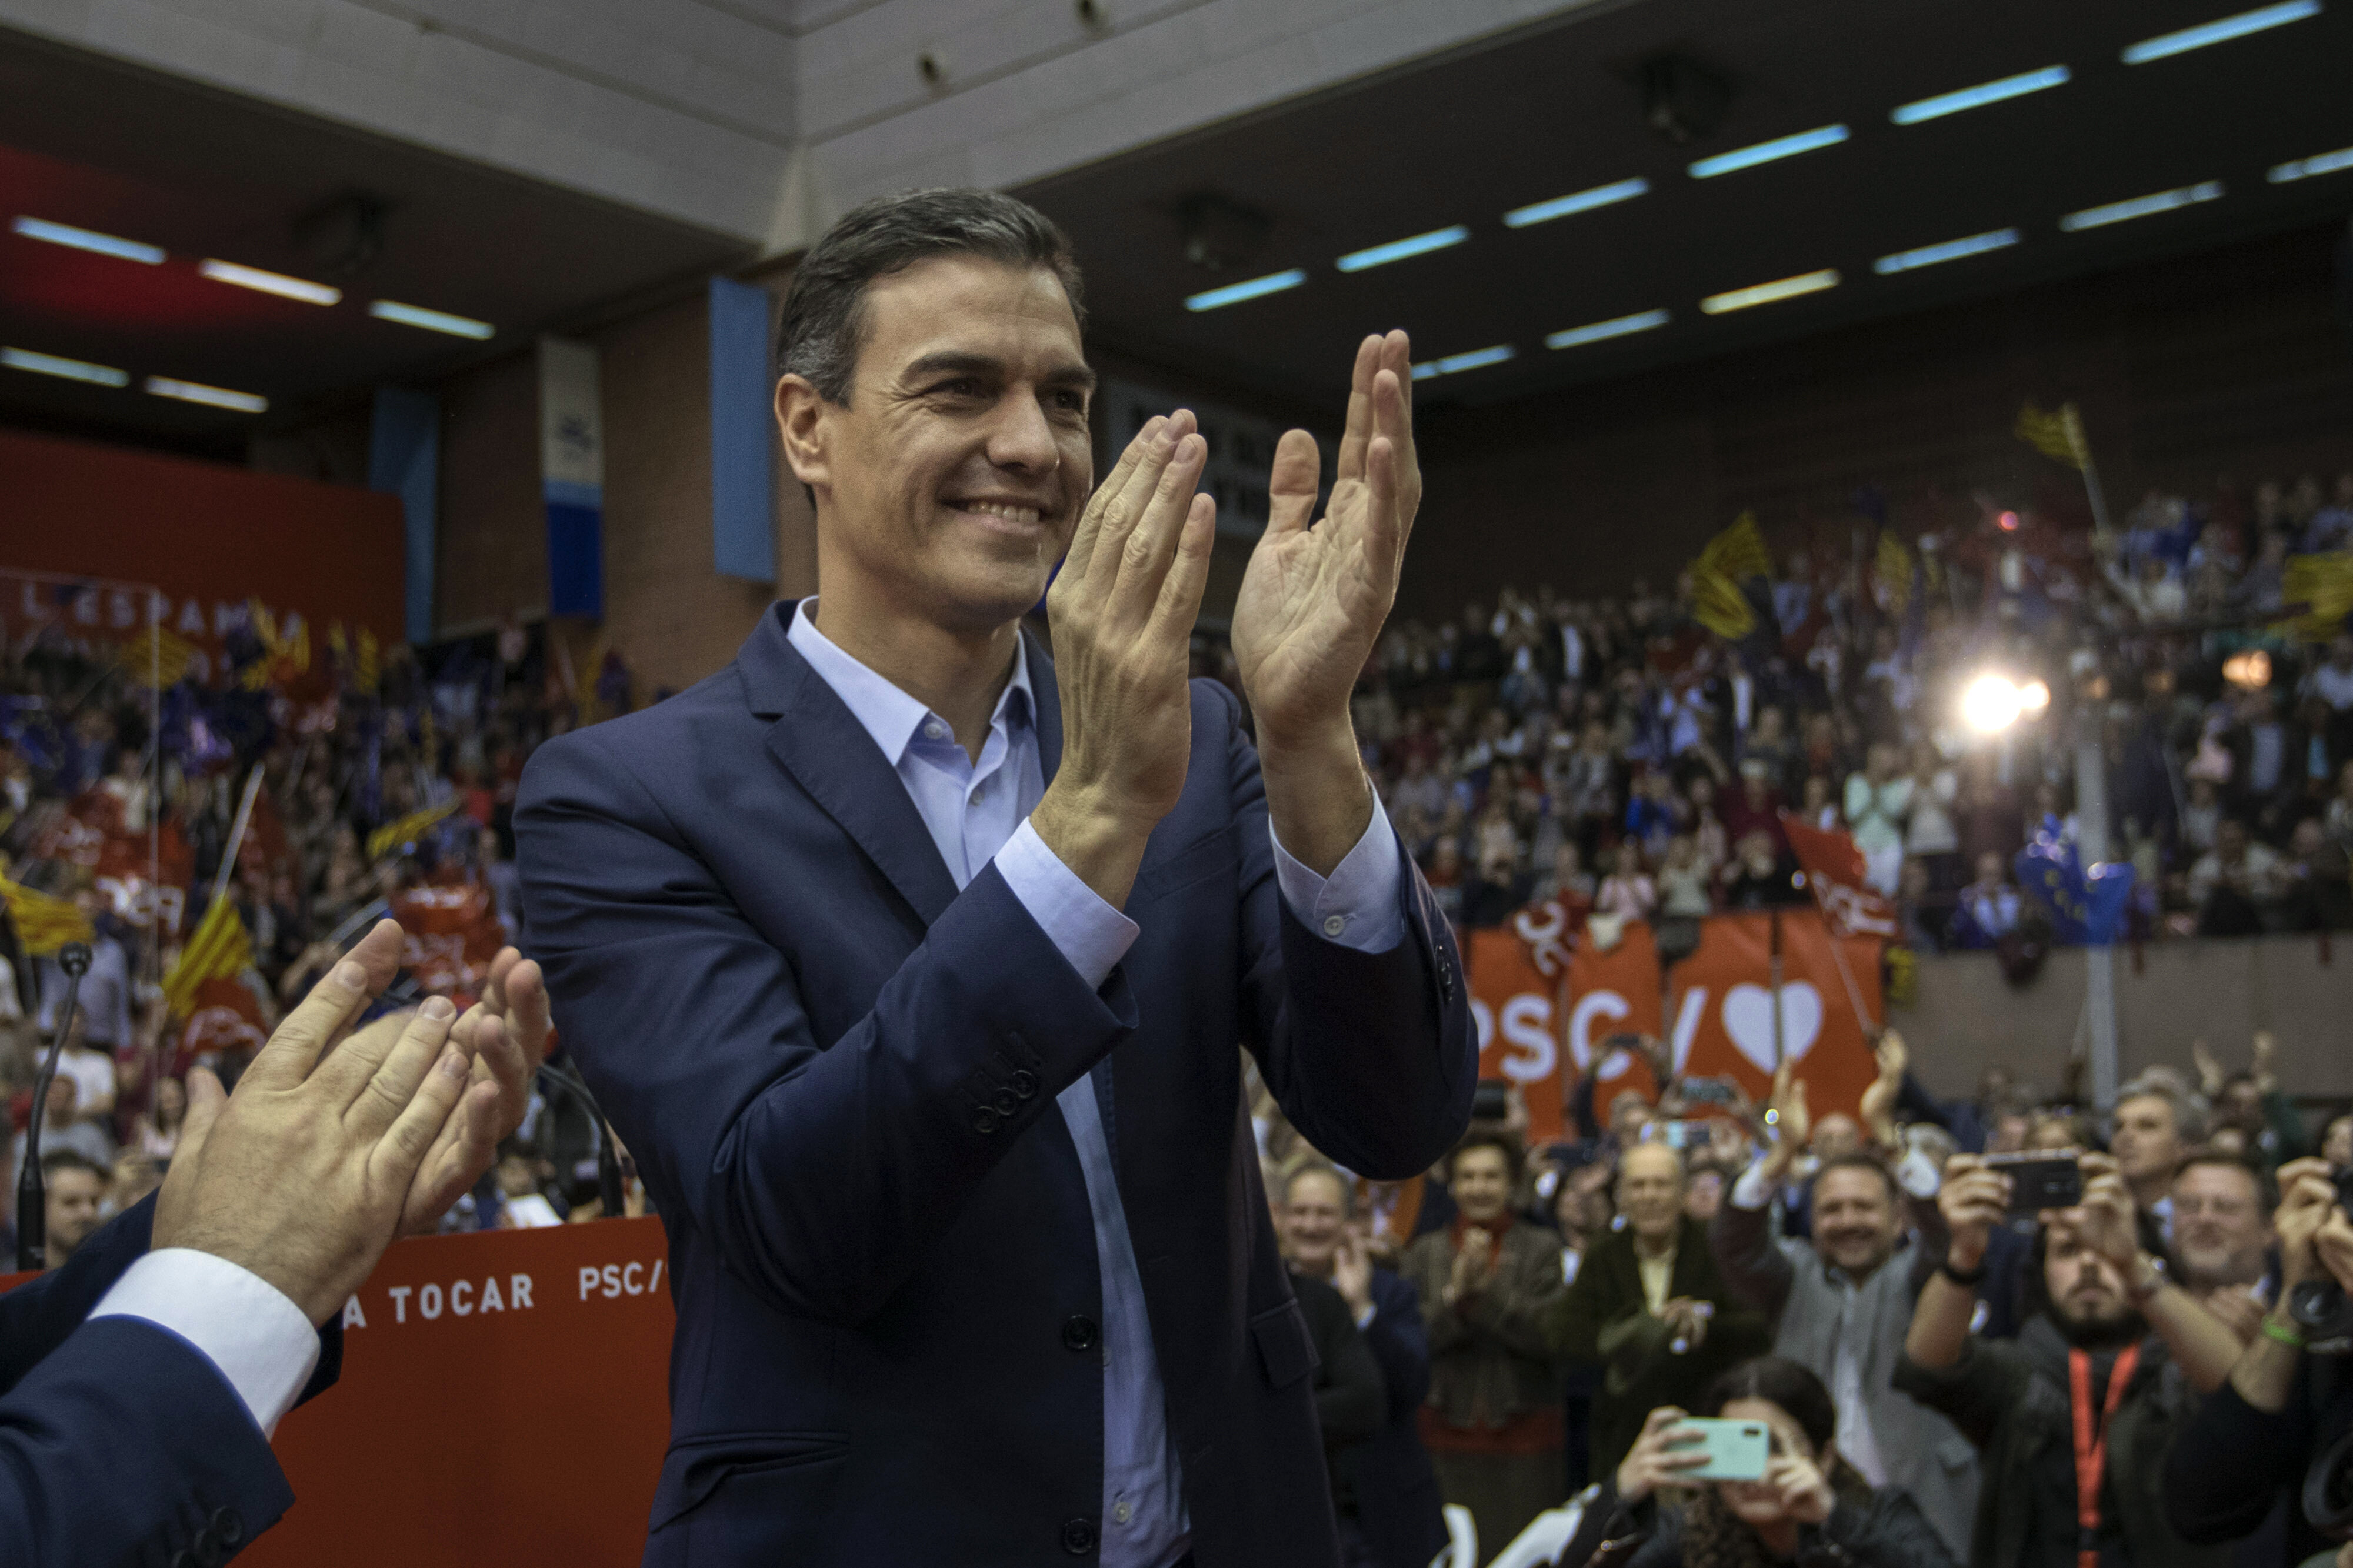 Spain's Socialist Prime Minister Pedro Sánchez came to power last June when he succeeded in ousting the conservative M